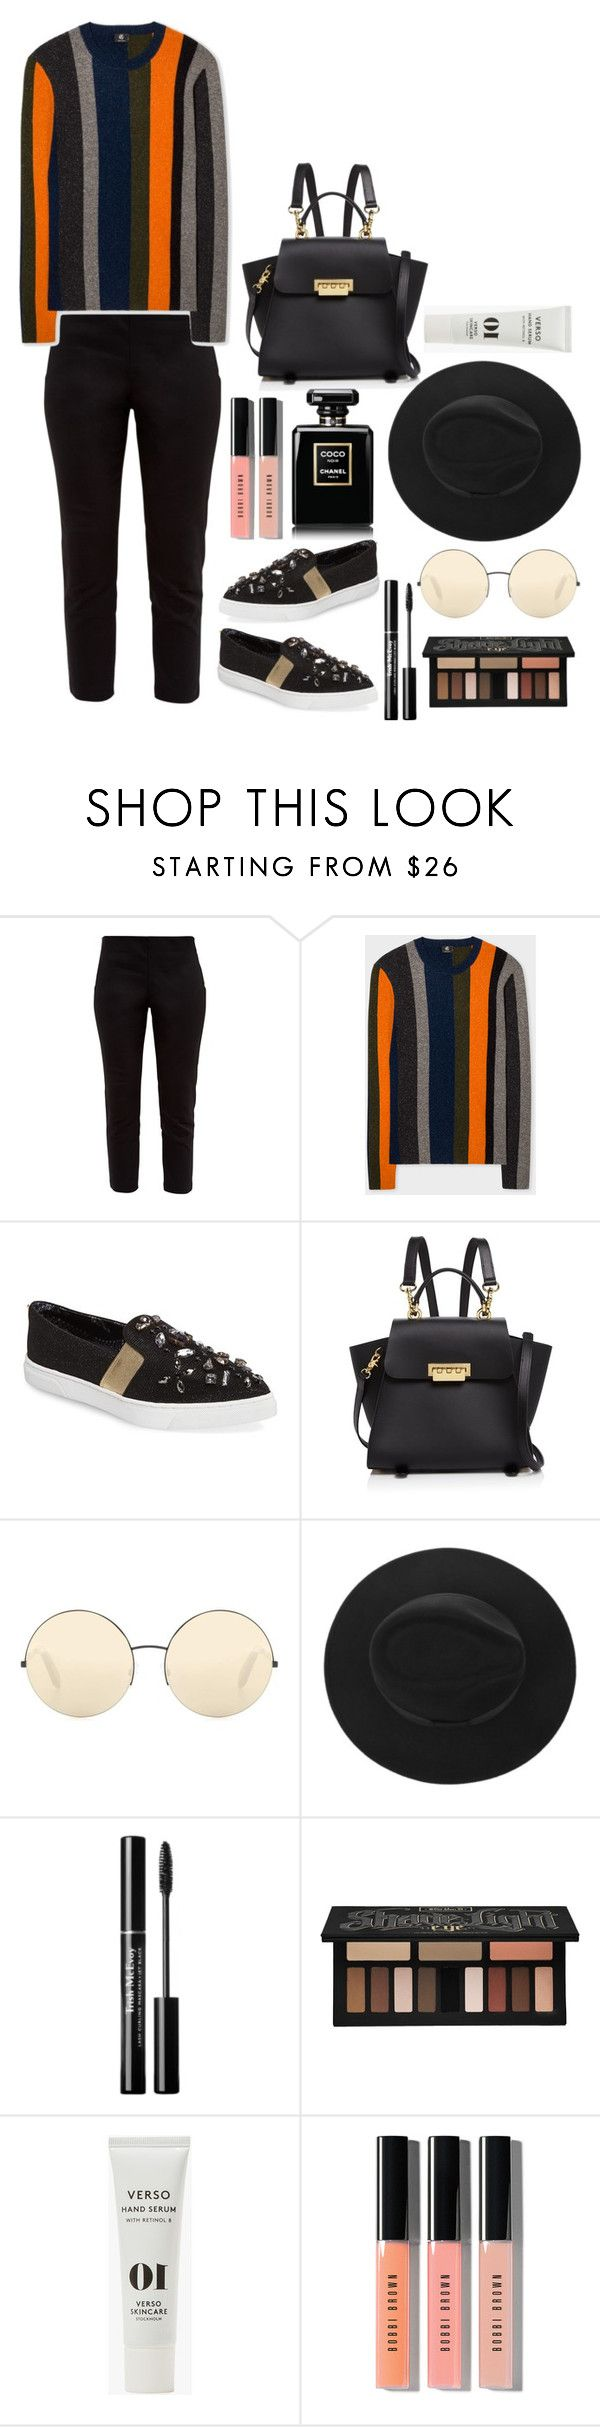 """""""Style- Minimal"""" by cultuerd-stylish ❤ liked on Polyvore featuring Ted Baker, ZAC Zac Posen, Victoria Beckham, Kat Von D, Verso, Bobbi Brown Cosmetics, minimal, trend and styleinsider"""